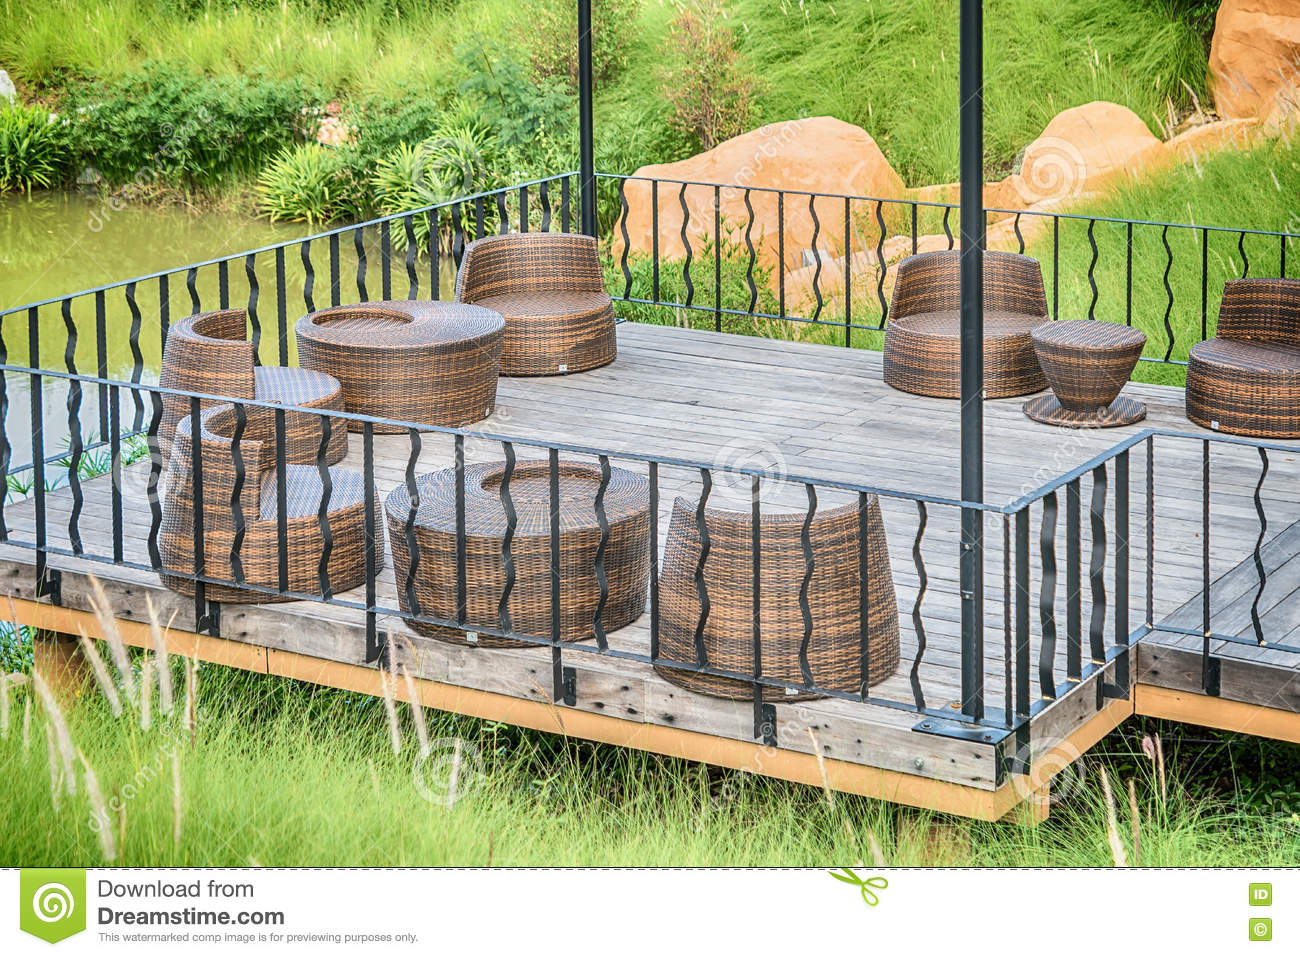 The Wood Table On Natural Outdoor Of A Restaurant With Tree